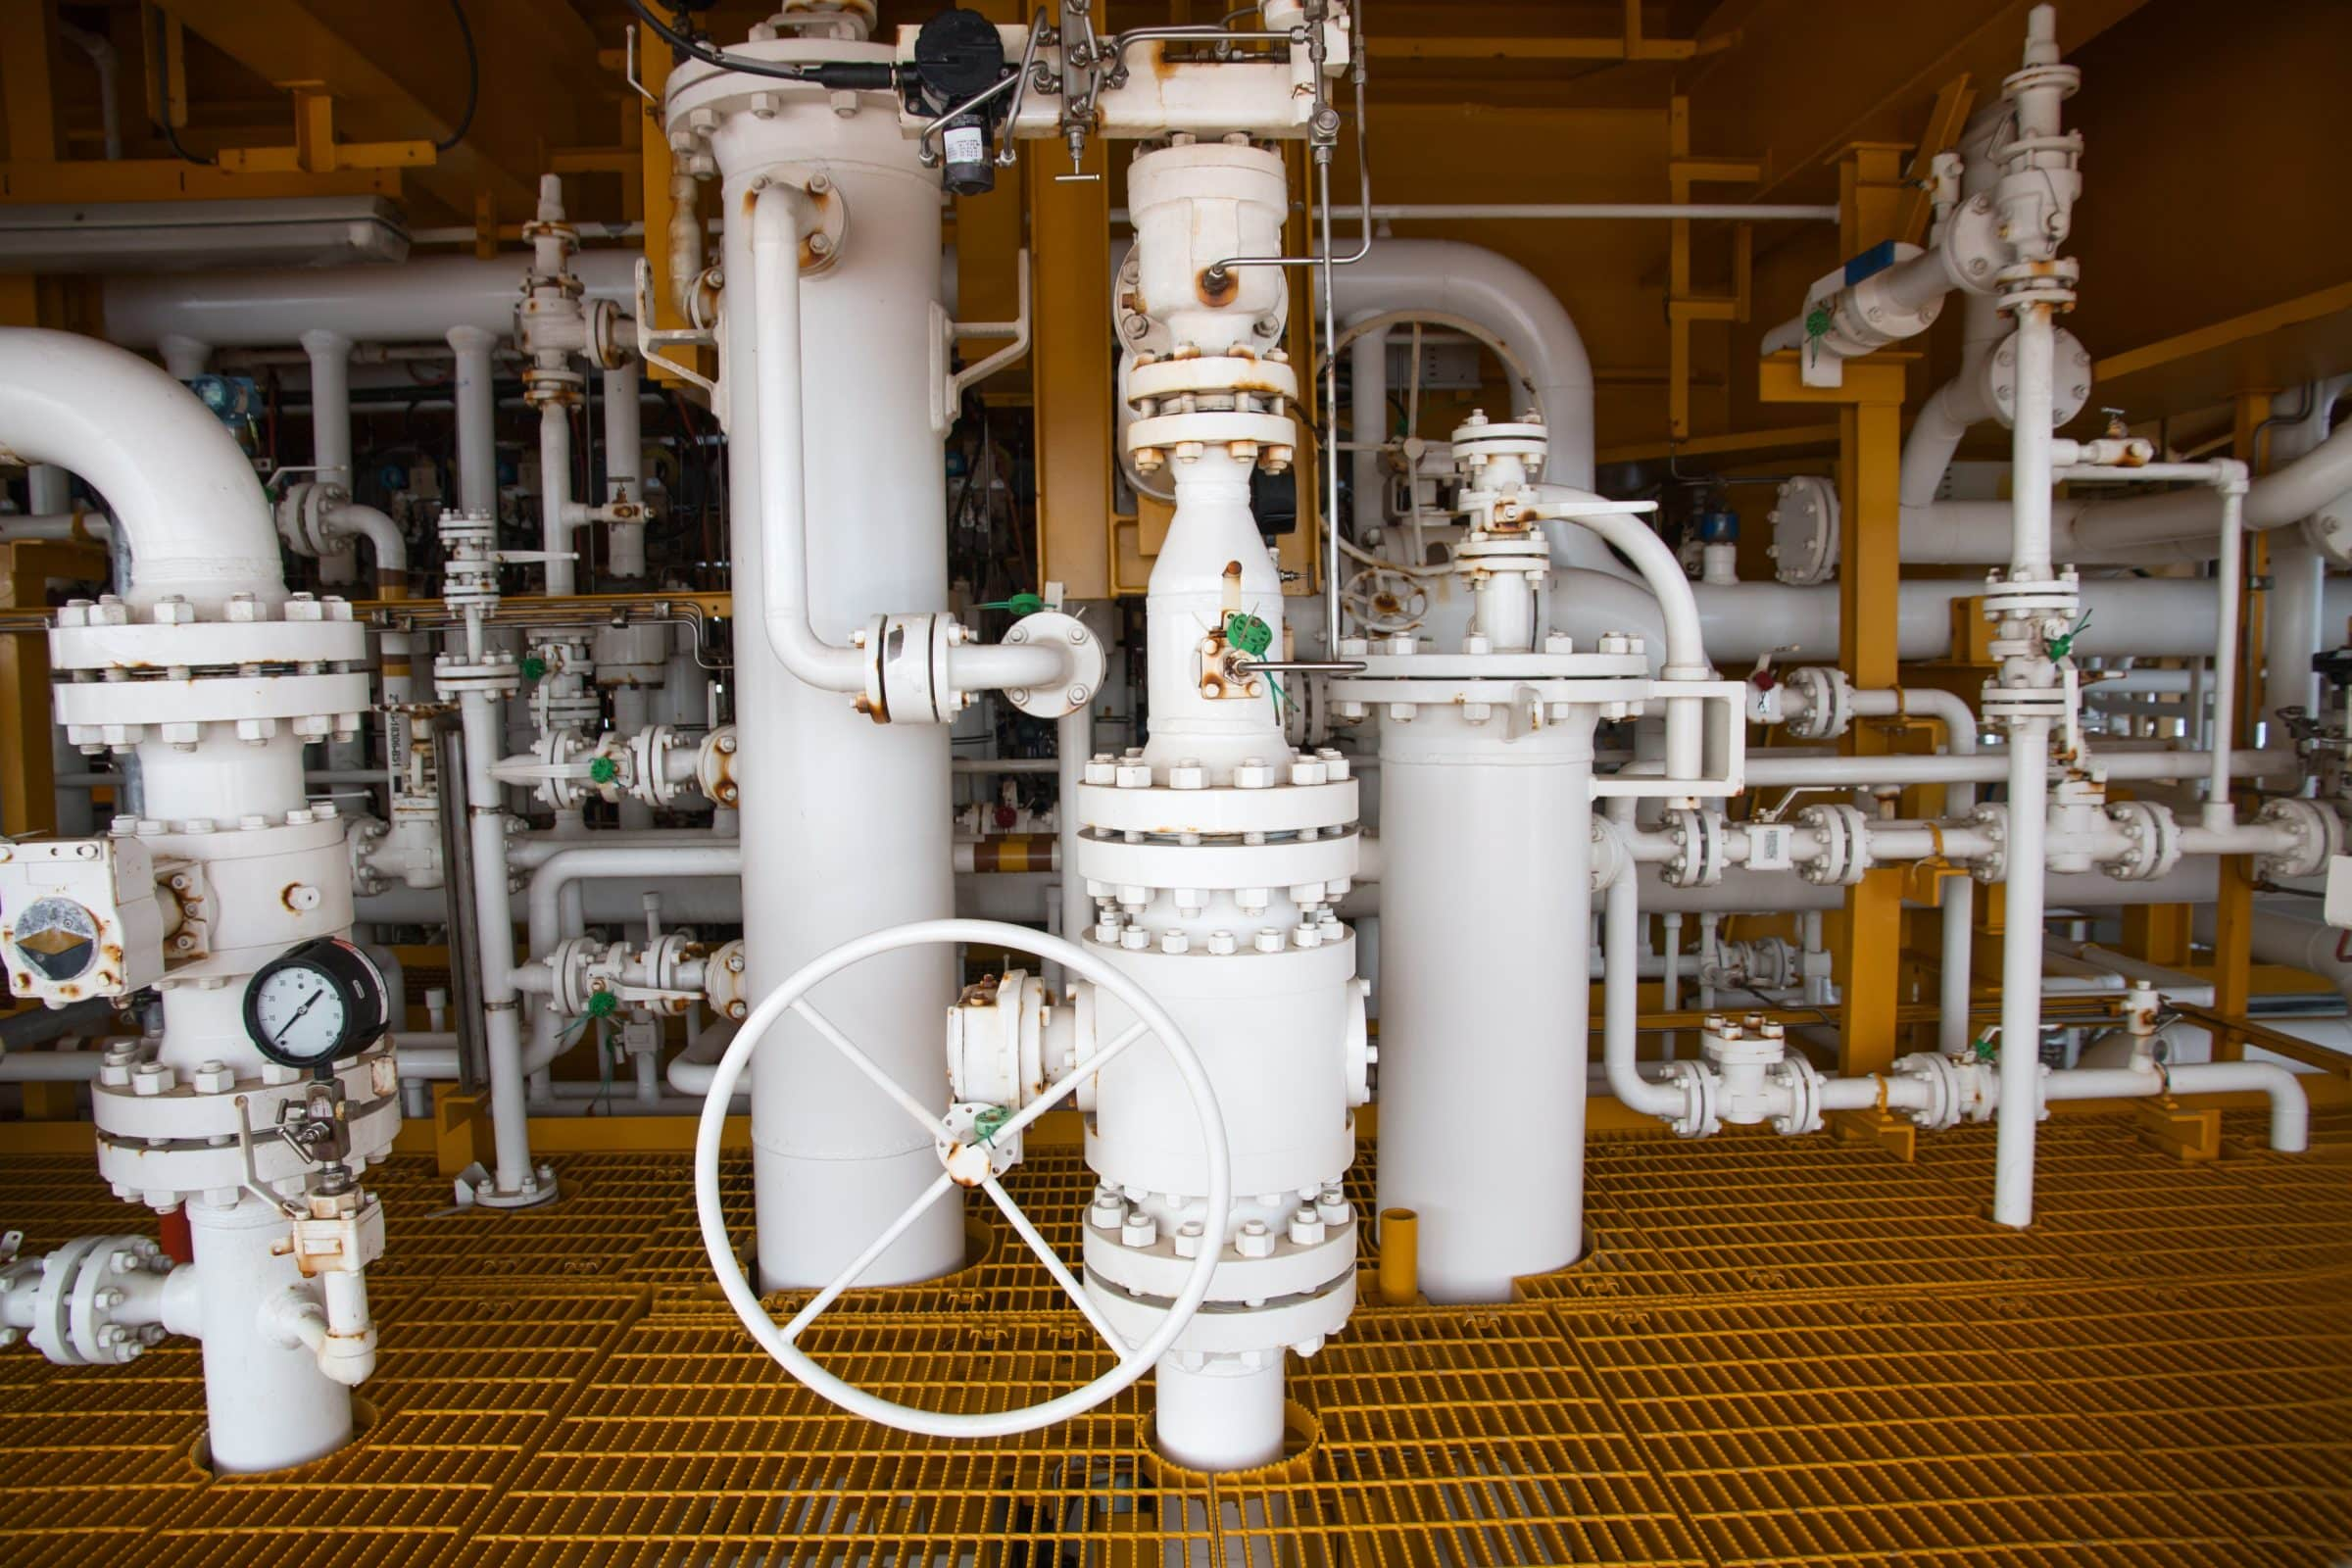 DBB - Safe solution couse valve meet the face-to-face requirements of ASME B16.10.